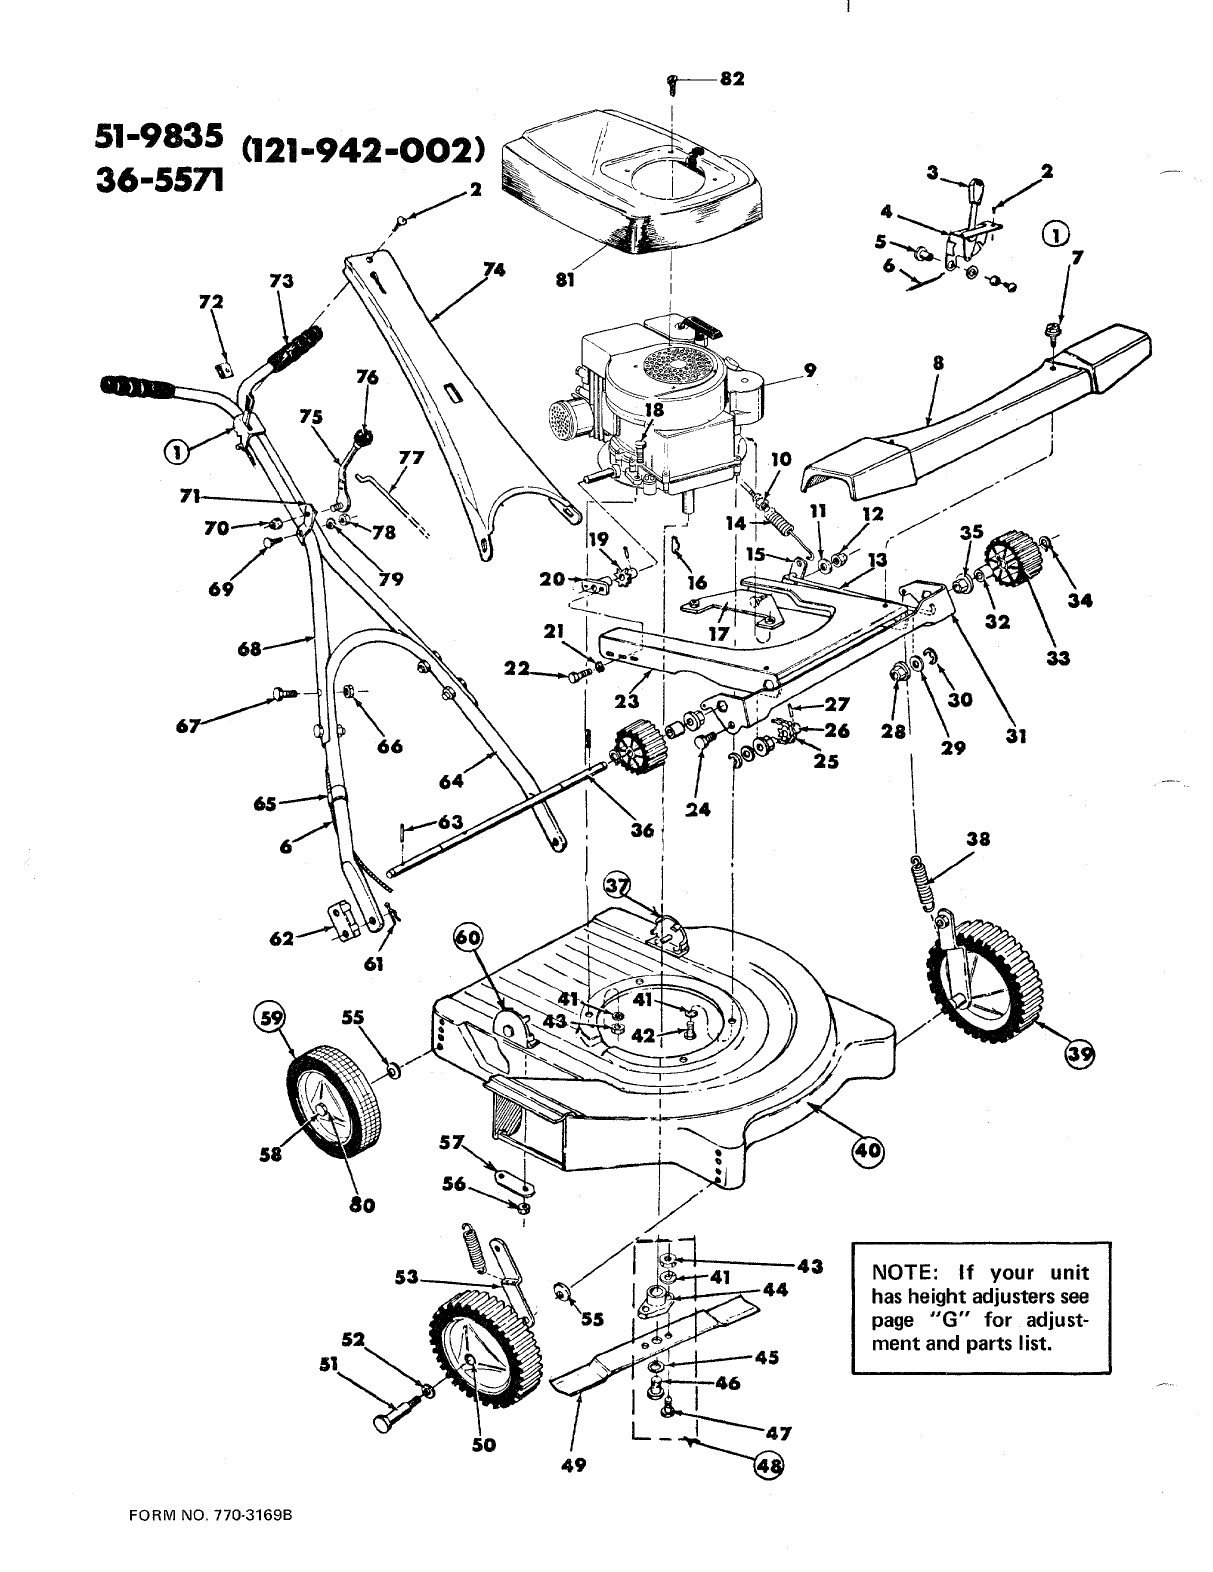 Page 2 of MTD Lawn Mower (121-942-002) User Guide